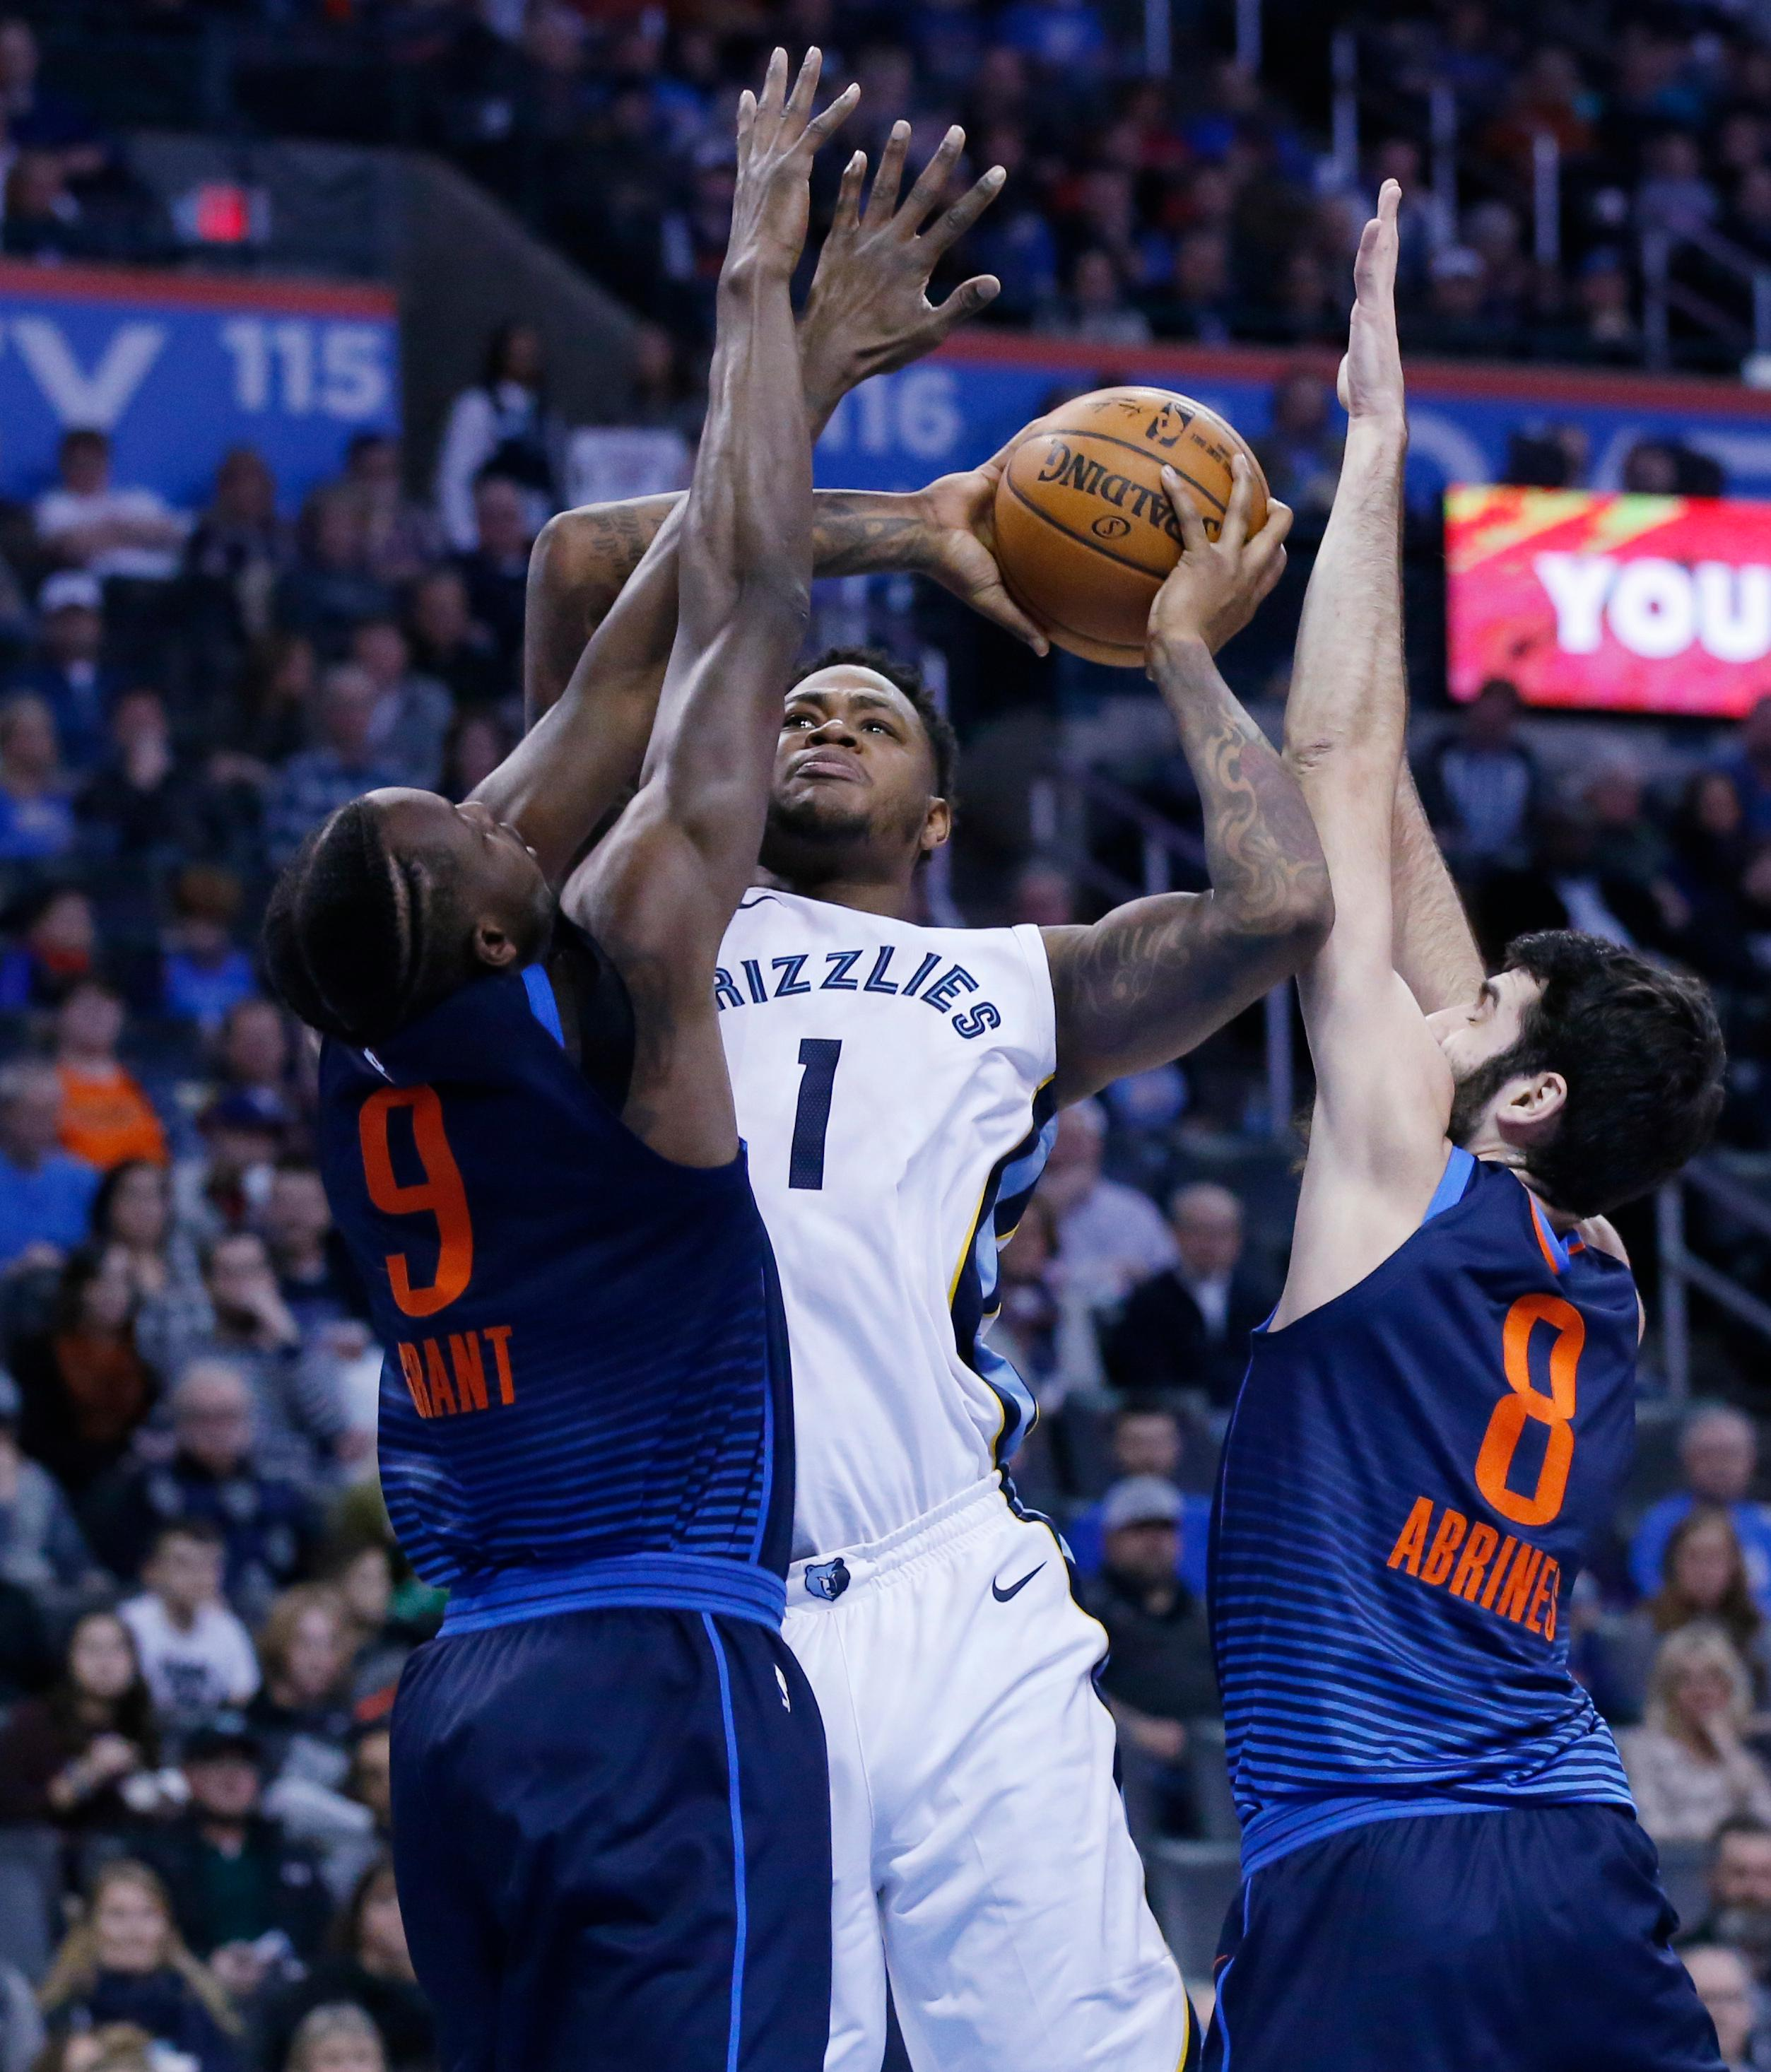 Memphis Grizzlies forward Jarell Martin (1) shoots between Oklahoma City Thunder forward Jerami Grant (9) and guard Alex Abrines (8) in the first half of an NBA basketball game in Oklahoma City, Sunday, Feb. 11, 2018. (AP Photo/Sue Ogrocki)